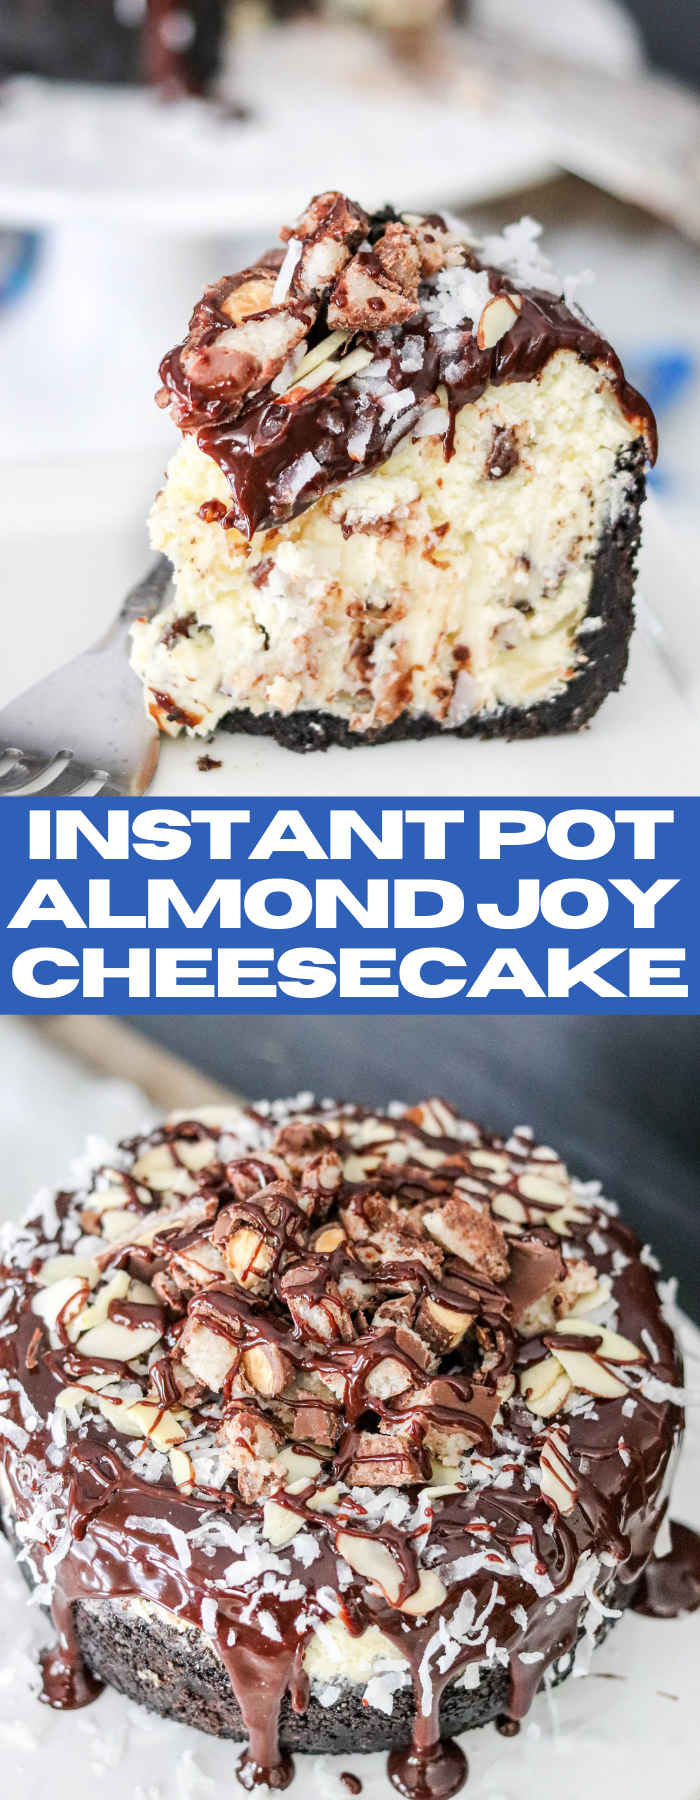 Instant Pot Almond Joy Cheesecake is a flavor packed dessert! Packed with almonds, coconut, and chocolate, this is an Almond Joy lover's dream!